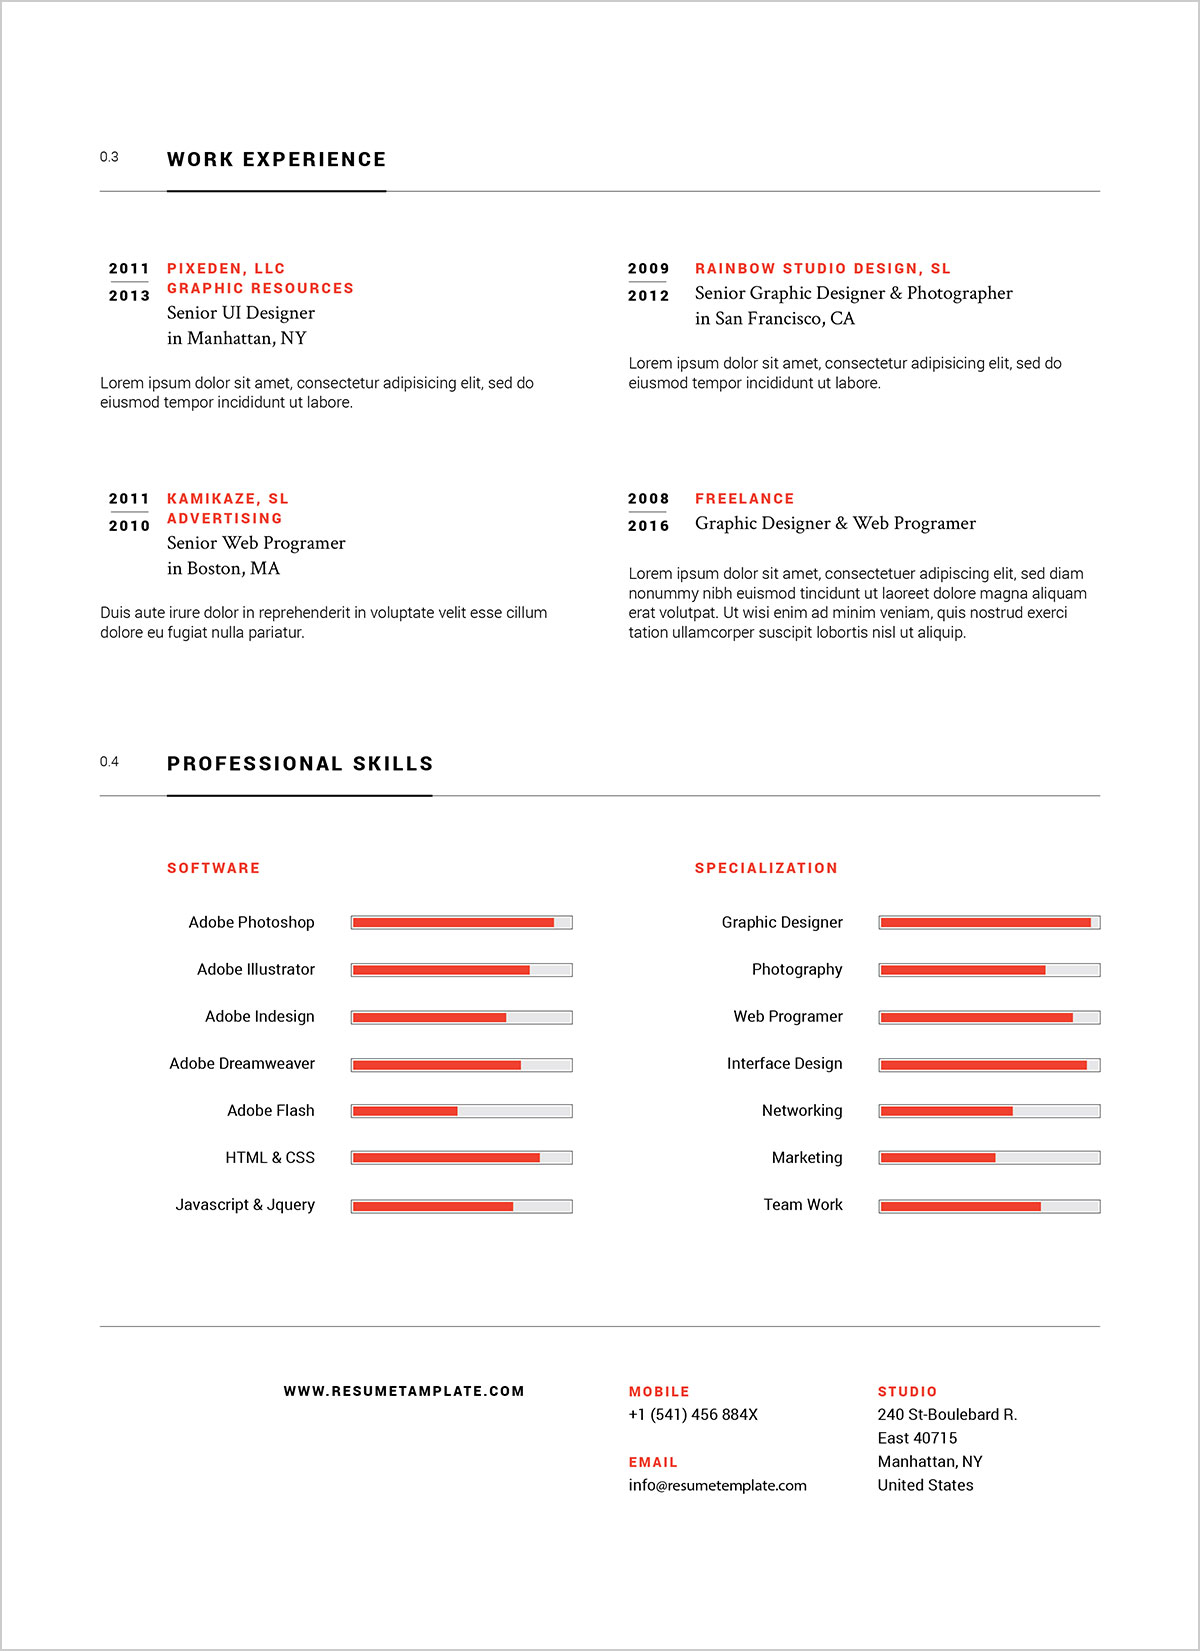 Free-Simple-Professional-Resume-Template-in-Ai-&-EPS-Format-4